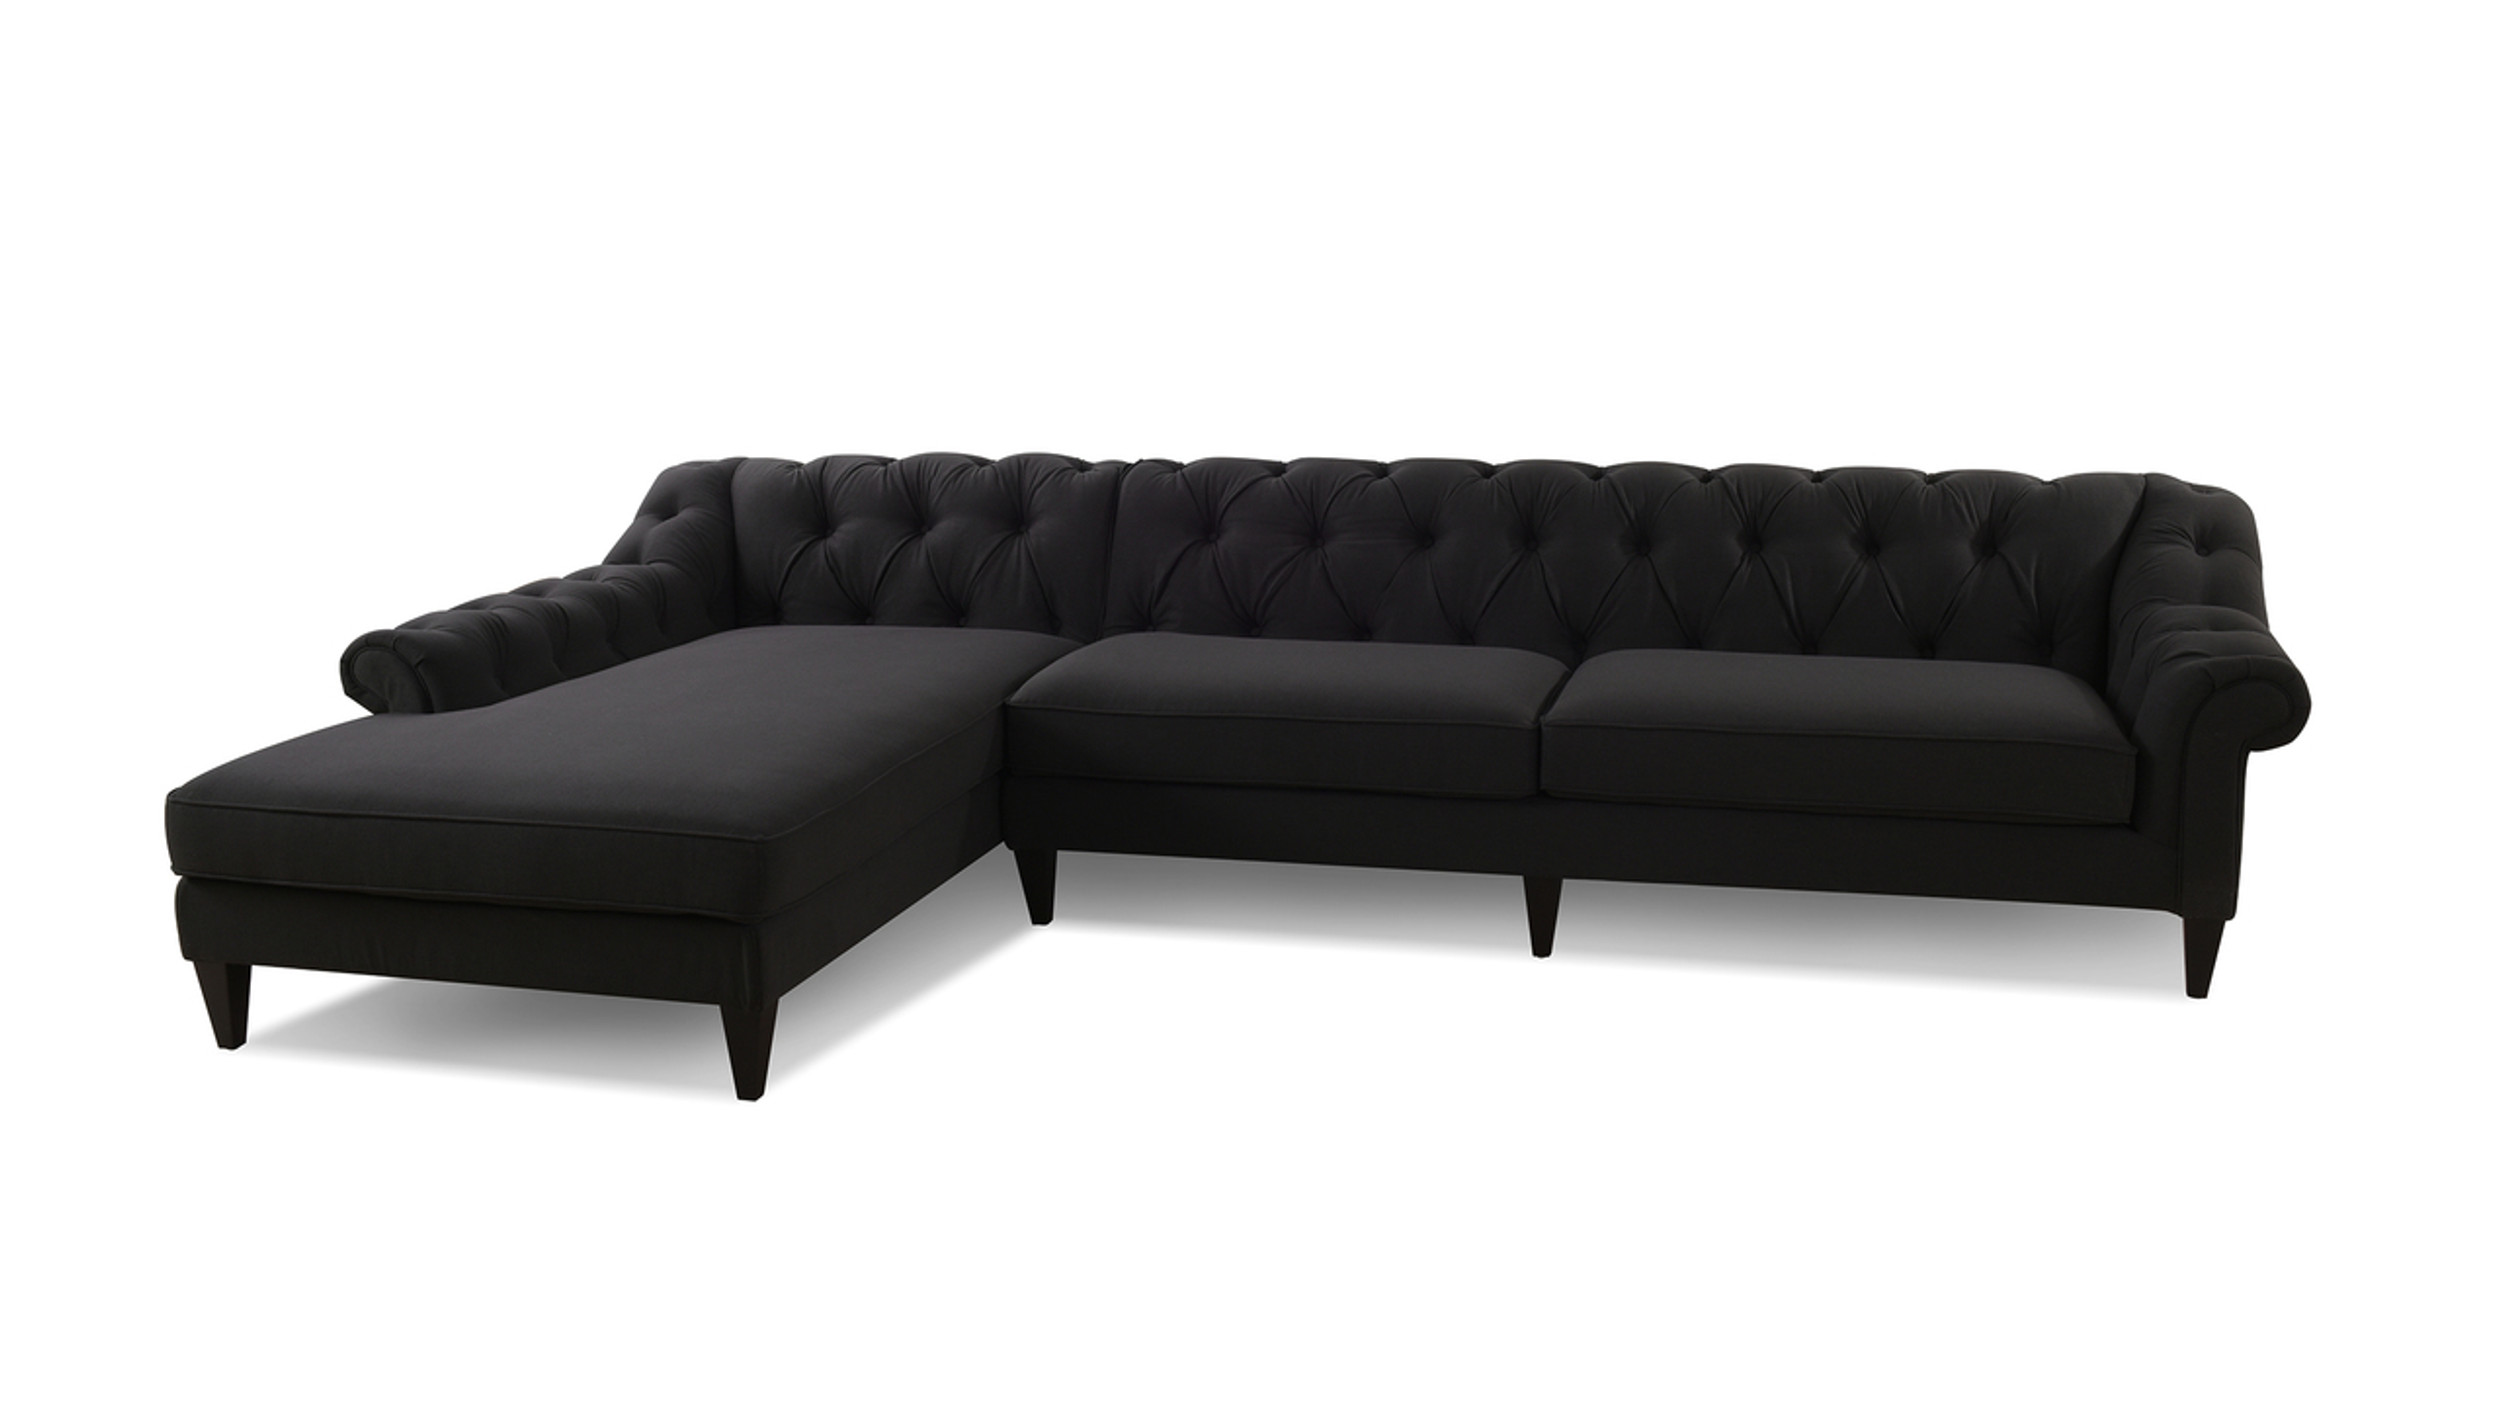 Amazing Alexandra Tufted Left Sectional Sofa Jet Black Alphanode Cool Chair Designs And Ideas Alphanodeonline